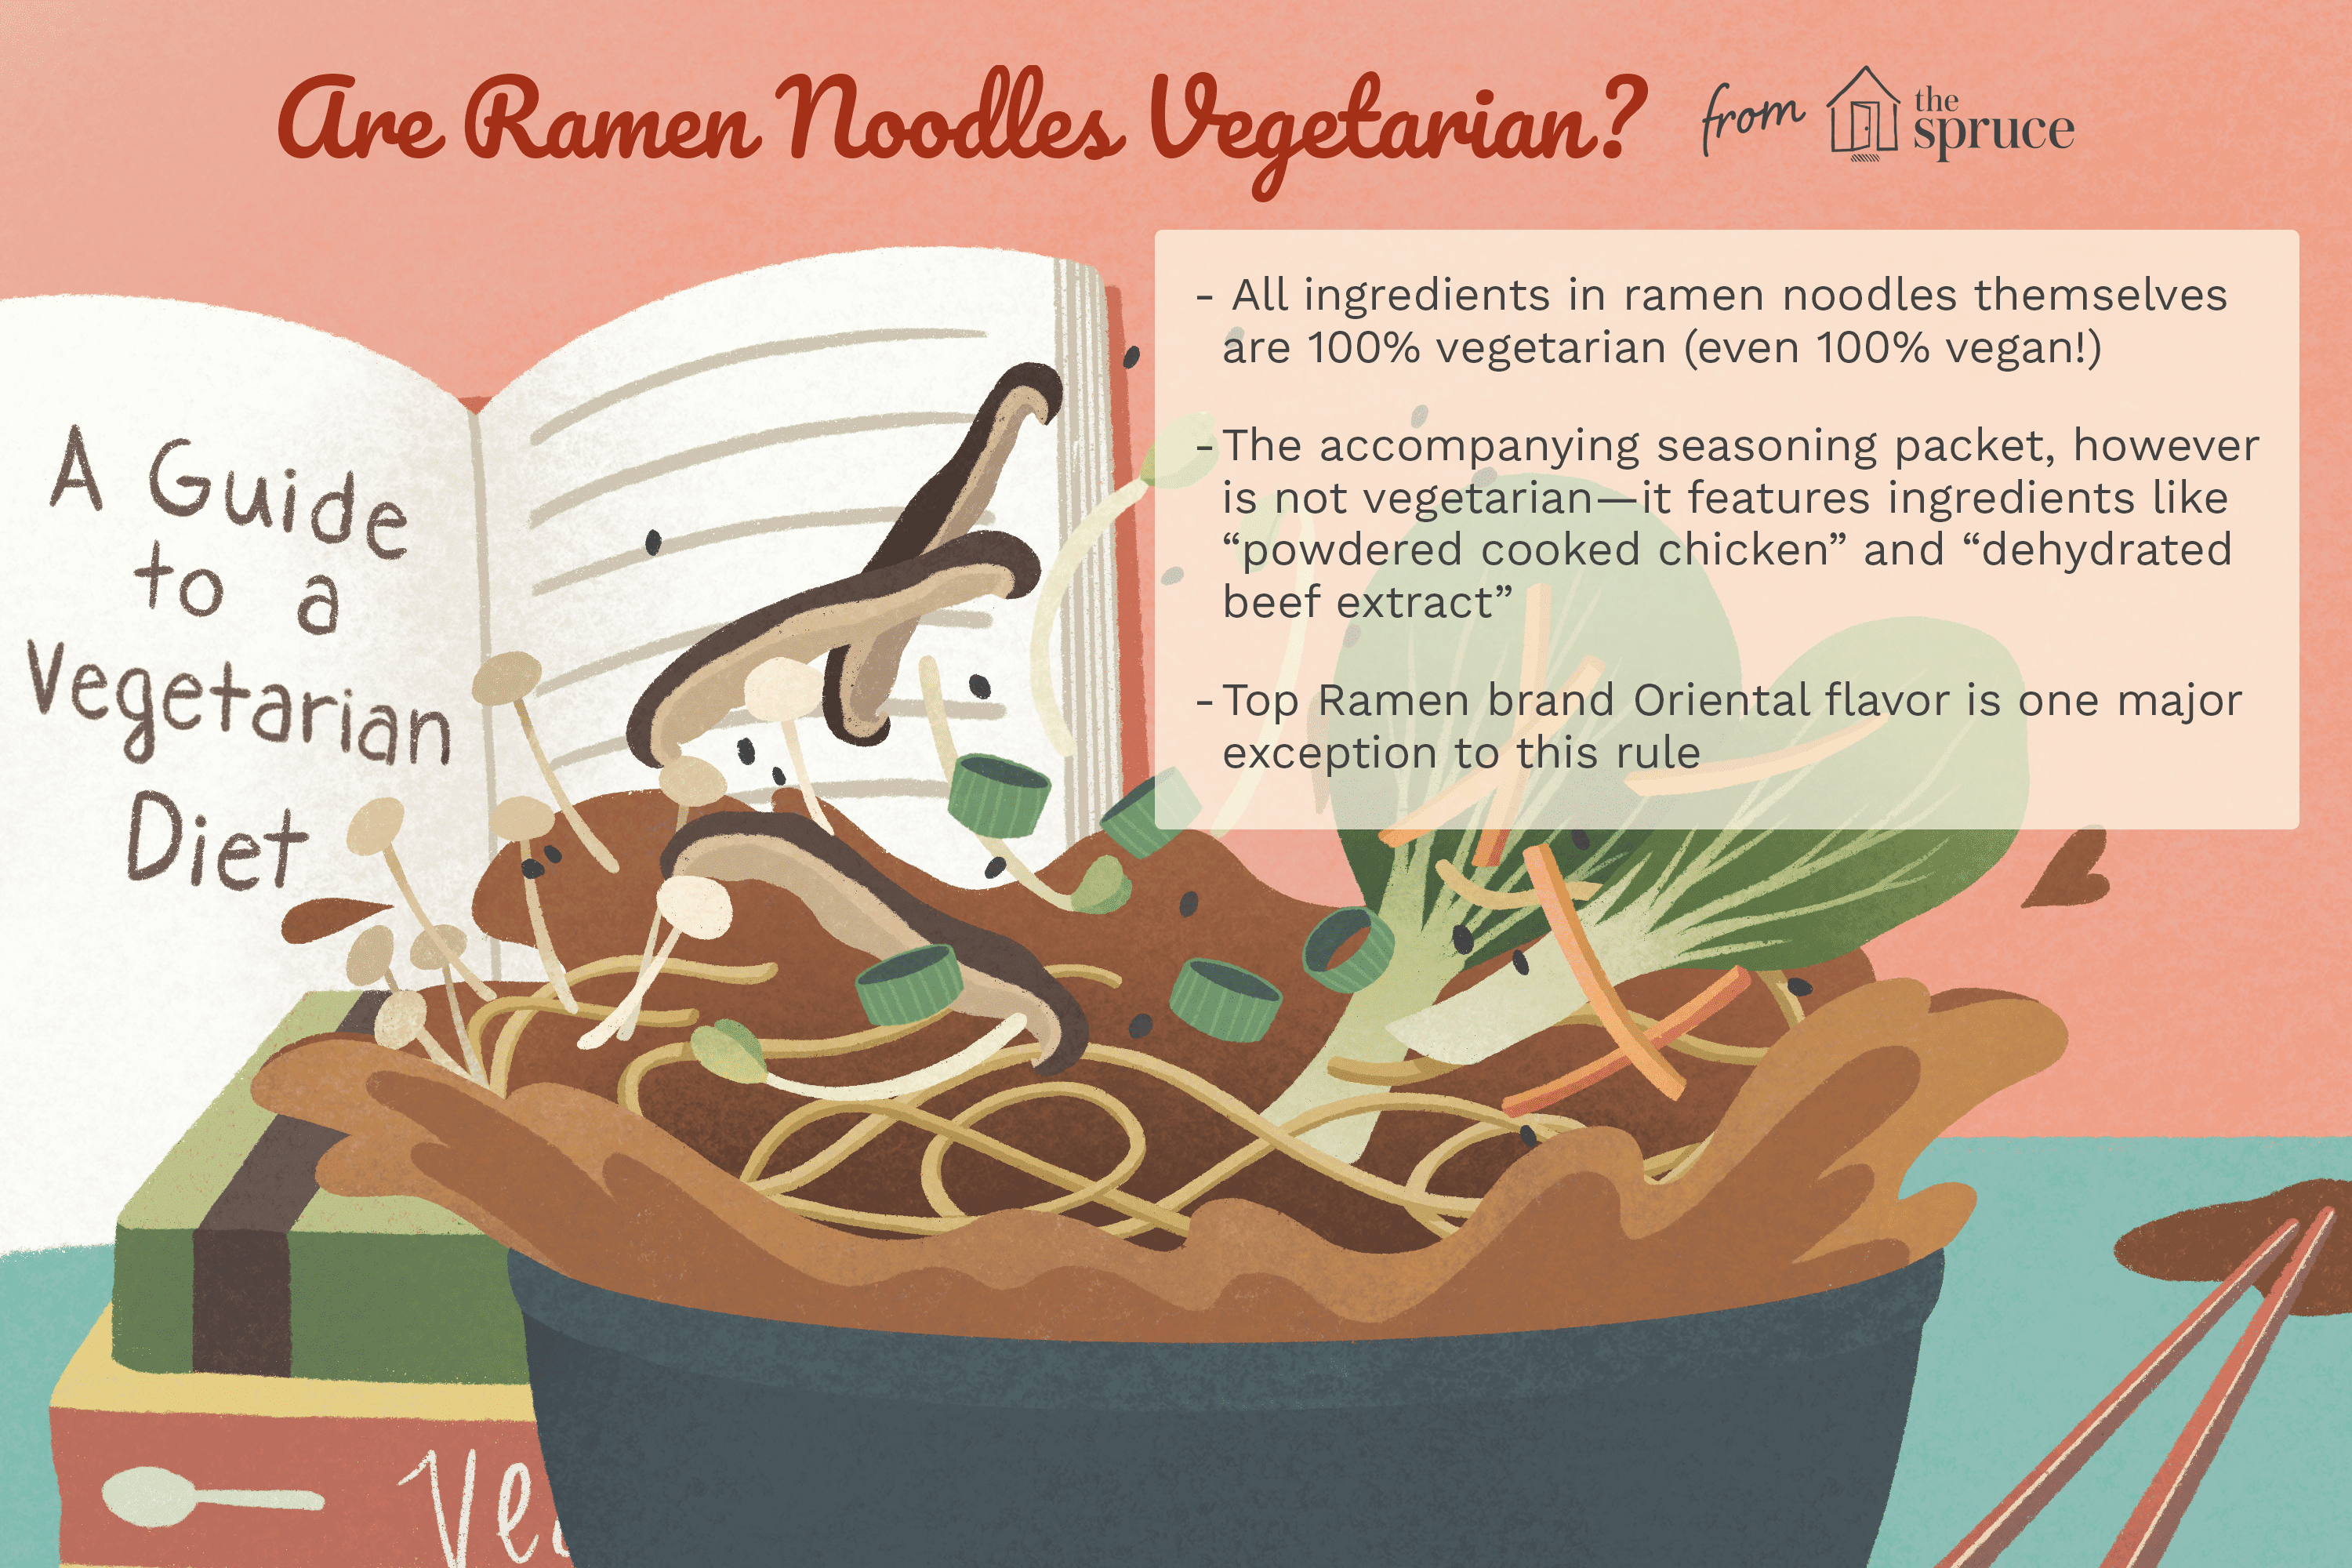 illustration that looks at whether ramen noodles are vegetarian